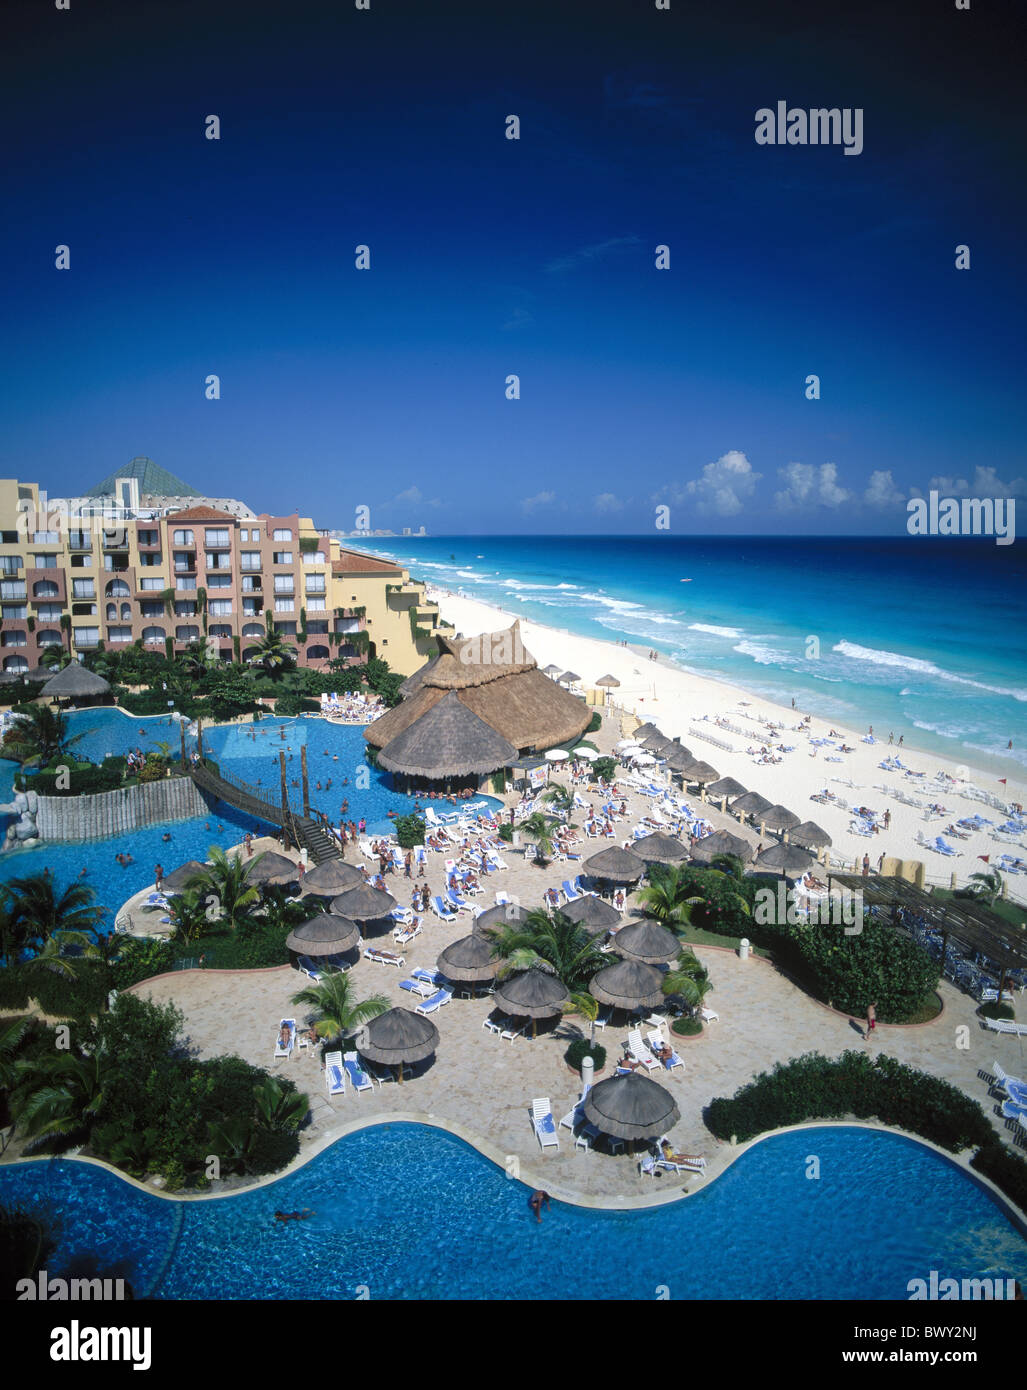 Cancun Fiesta Americana Resort hotel Mexico beach seashore swimming pool pool Yucatan - Stock Image